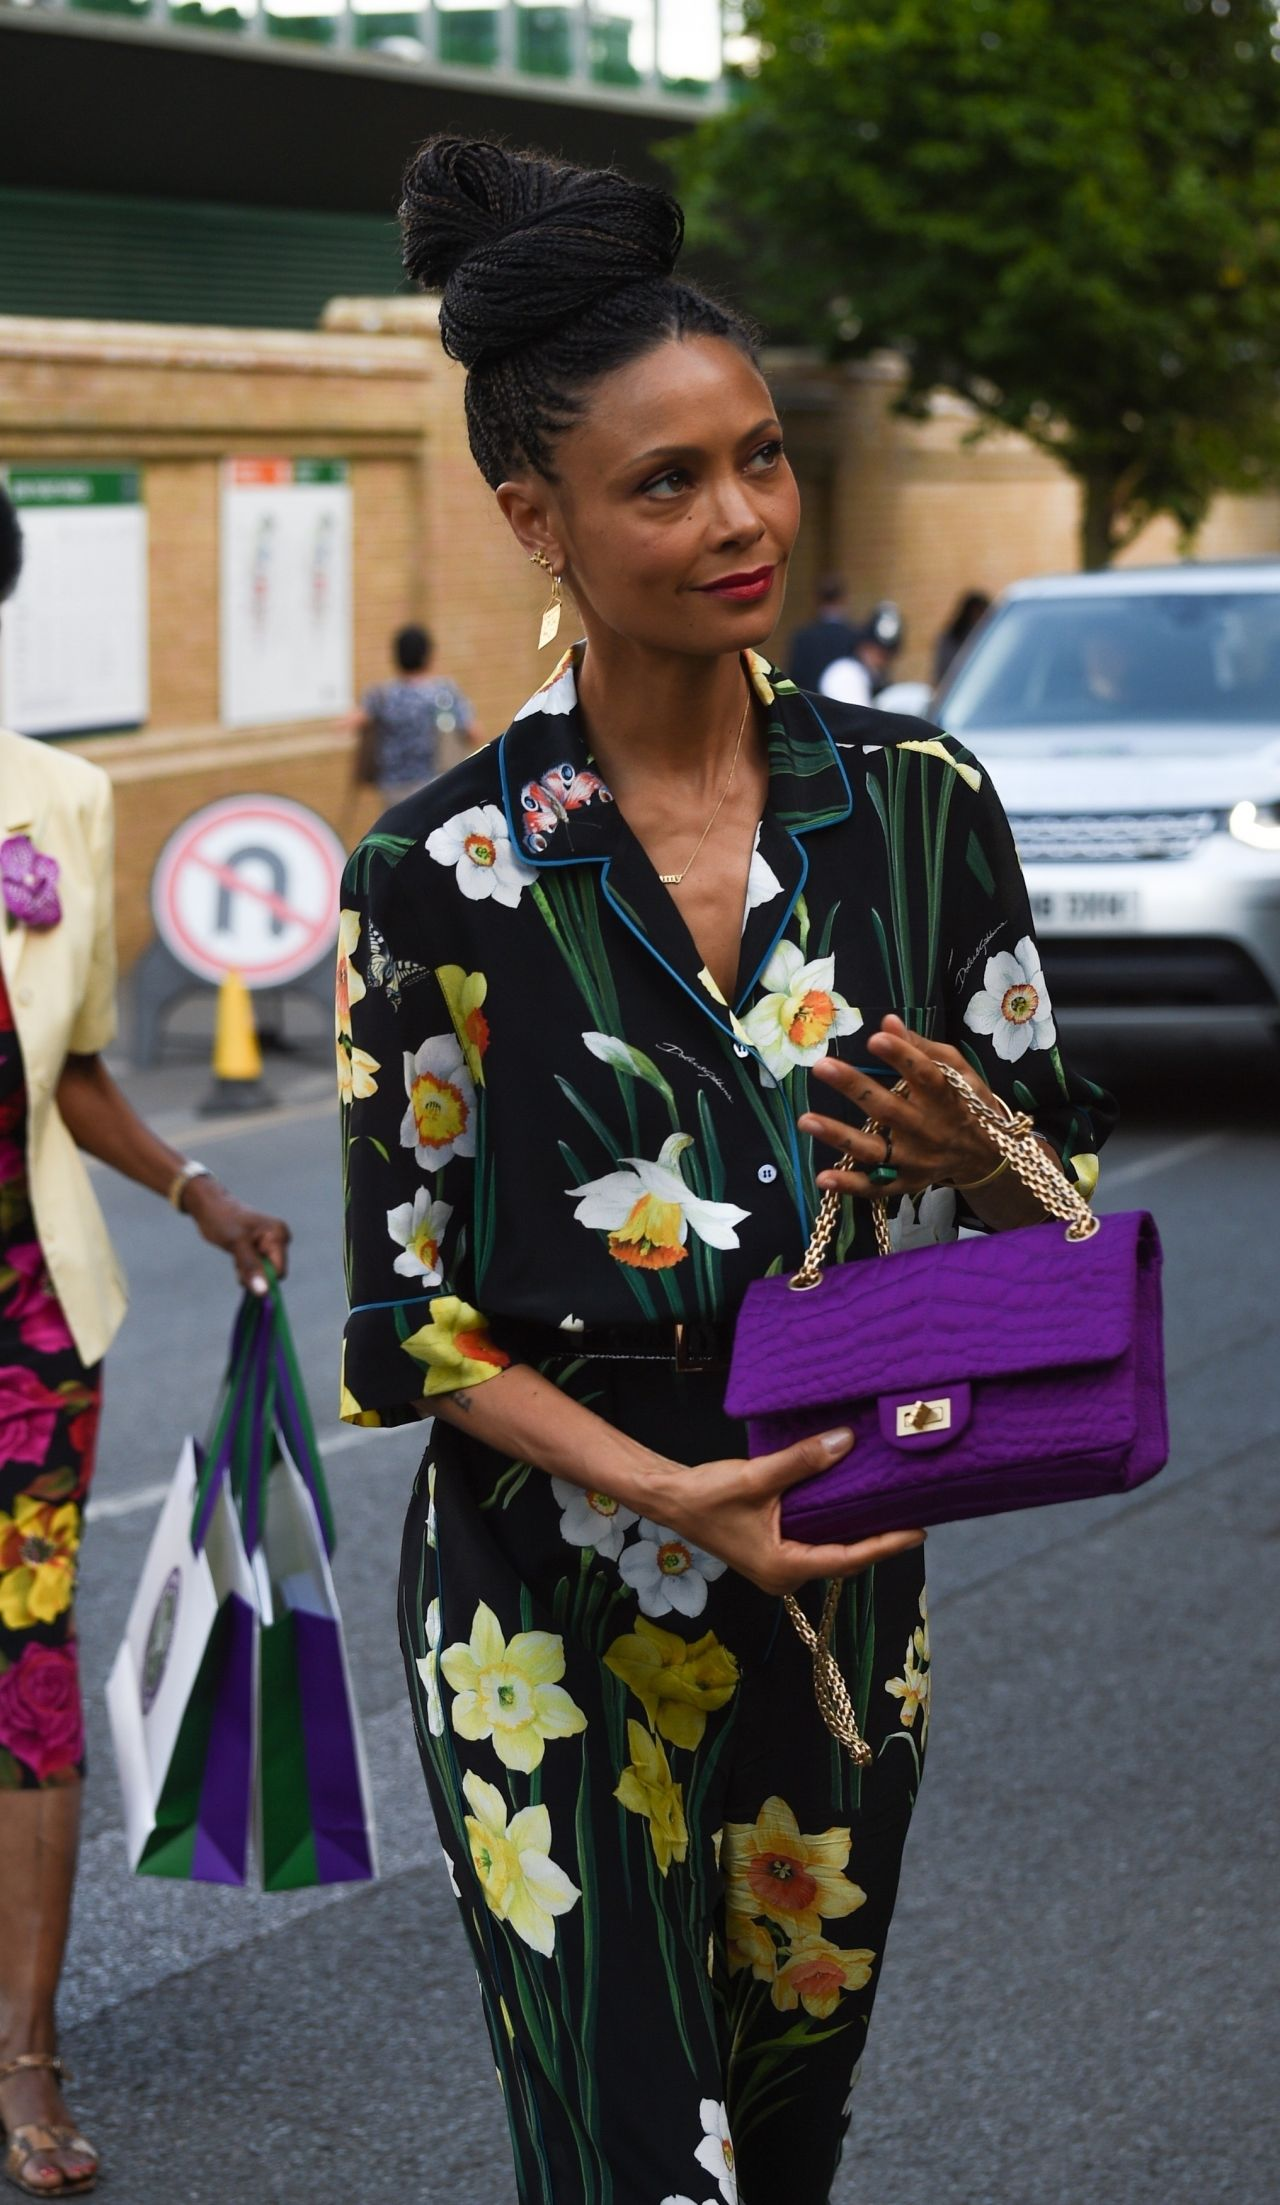 images Thandie newton leaves a studio after filming actors on actors in la april 2019